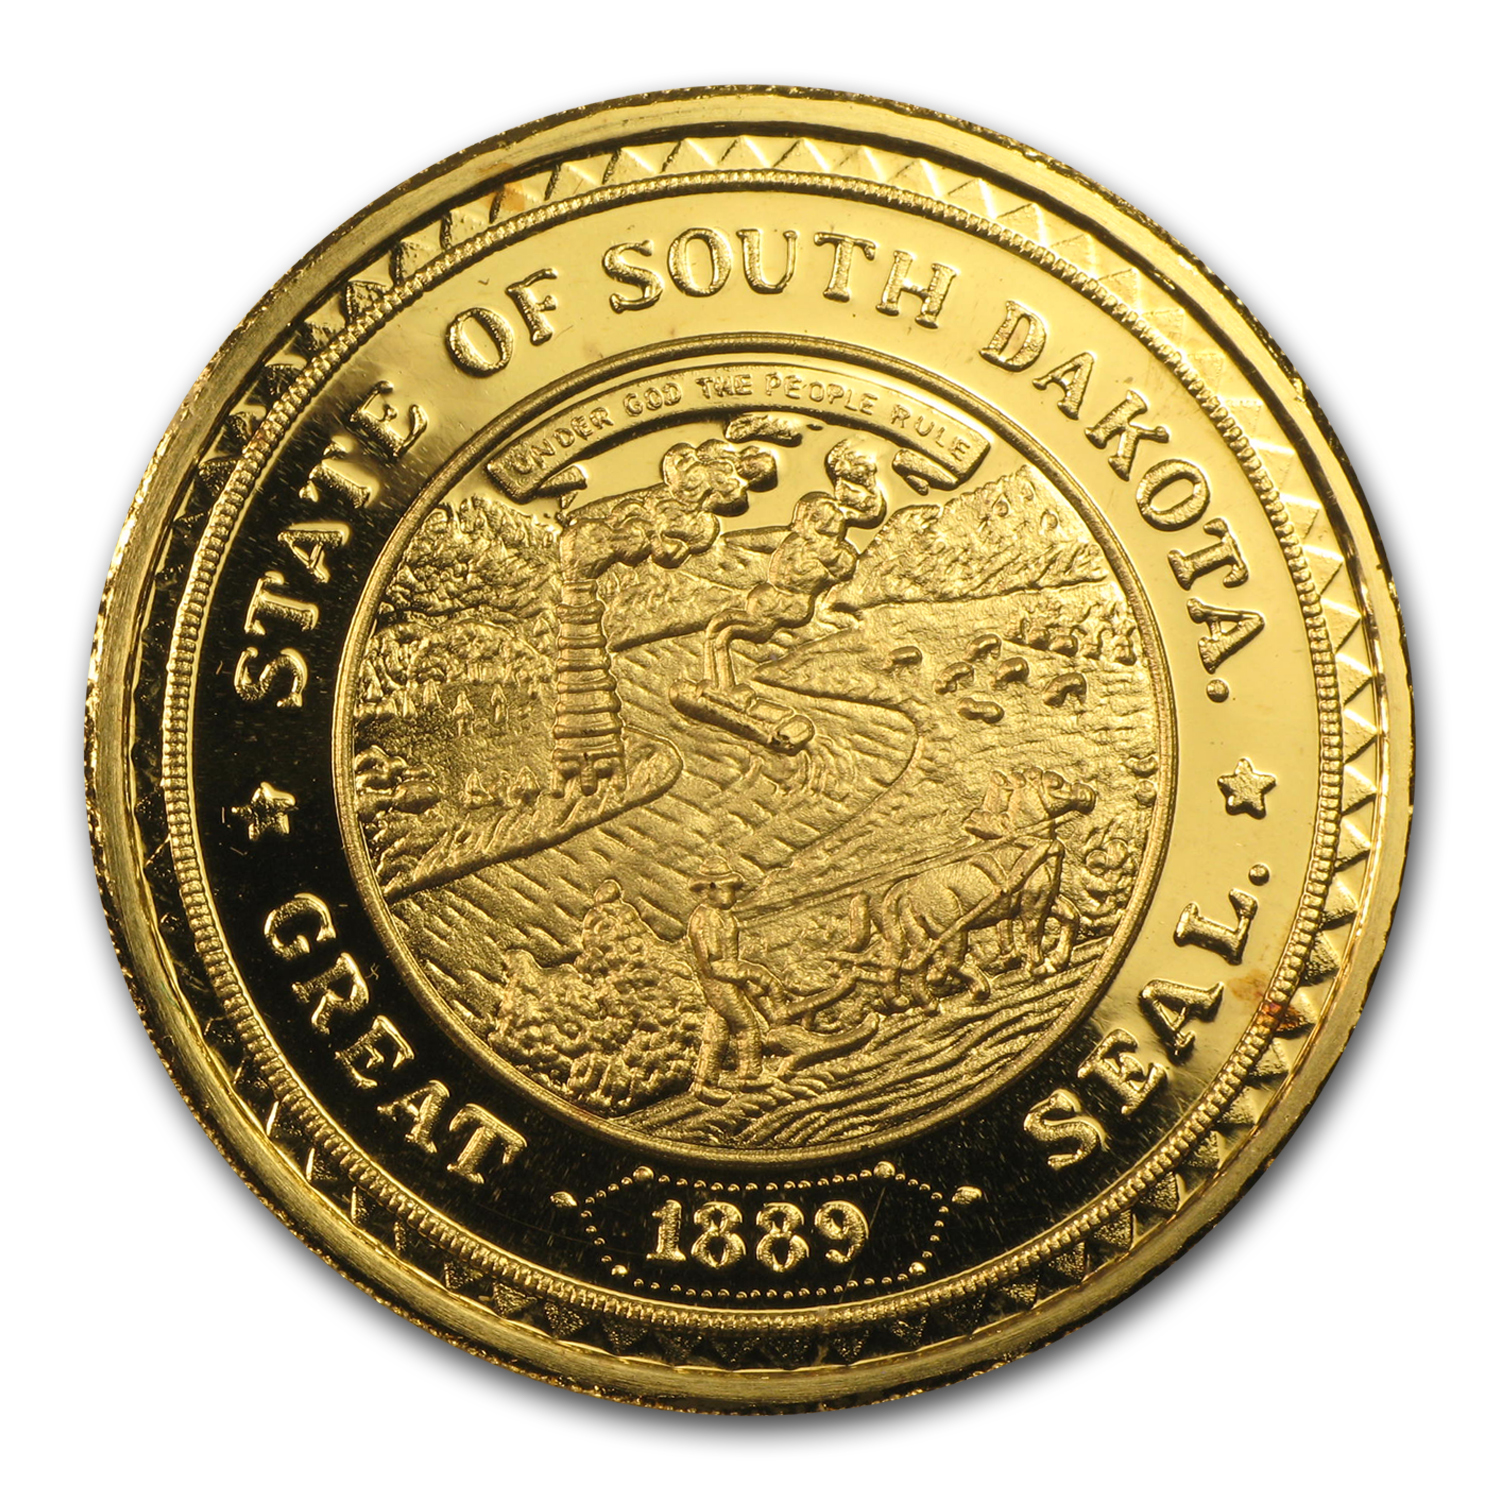 1 oz Gold Rounds - Great Seal of South Dakota